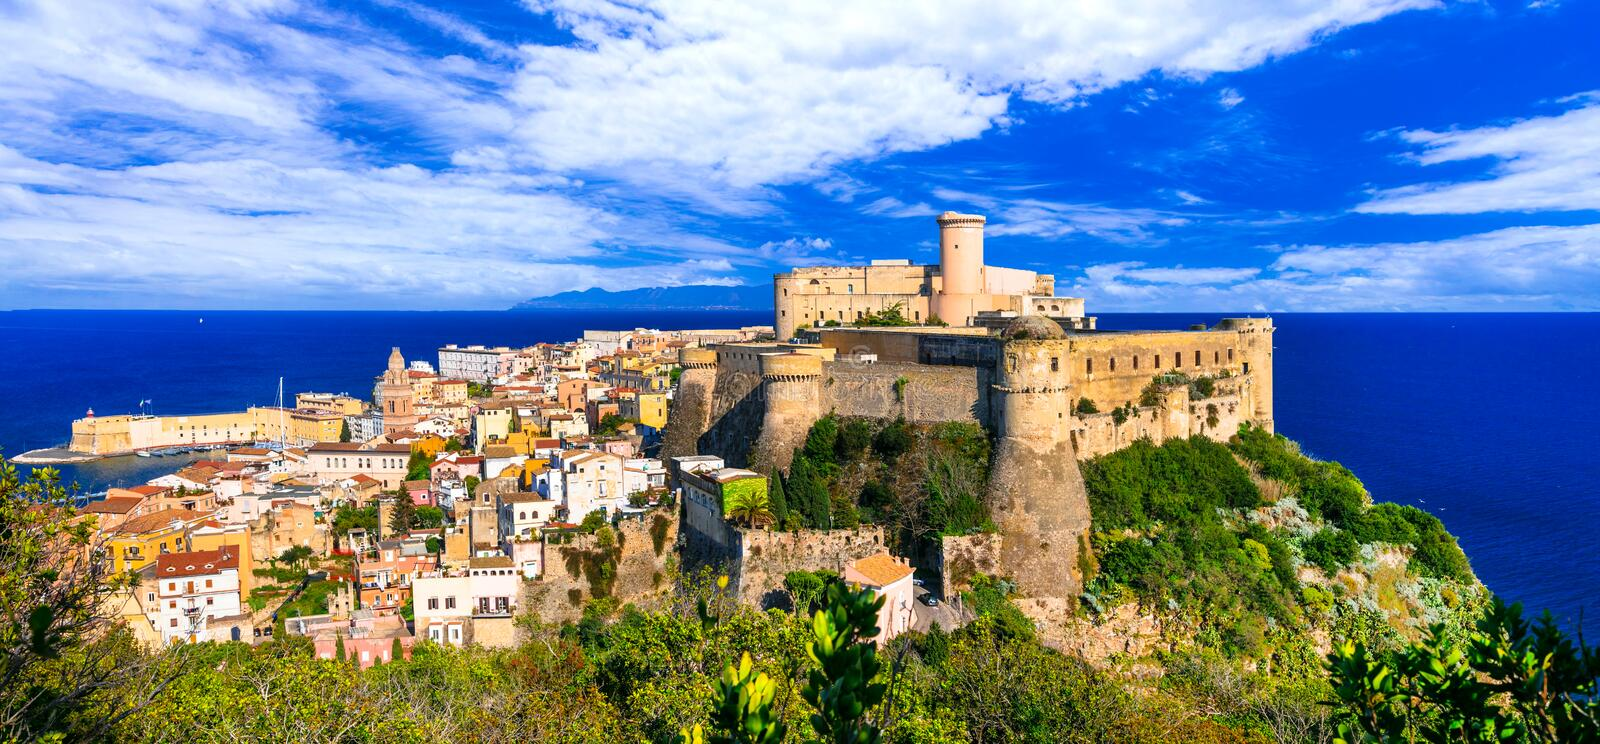 View of beautiful coastal town Gaeta with Aragonese castle. Land royalty free stock image